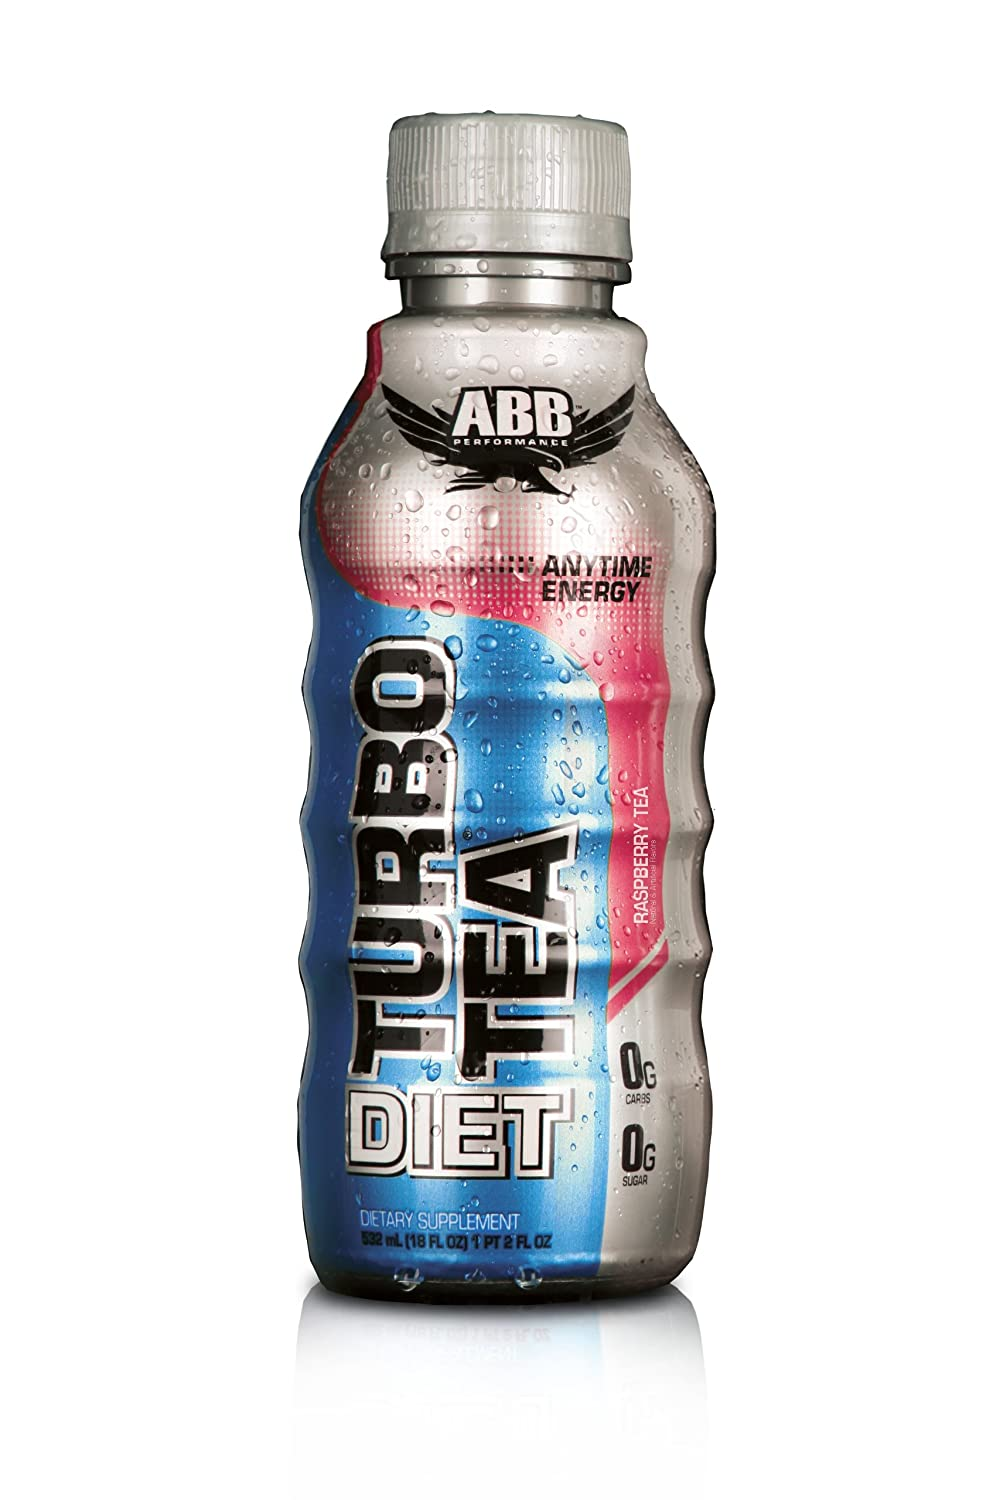 Amazon.com : ABB Performance Diet Turbo Nutrition Beverages, Fruit Punch, 18 Ounce (Pack of 24) : Energy Drinks : Grocery & Gourmet Food